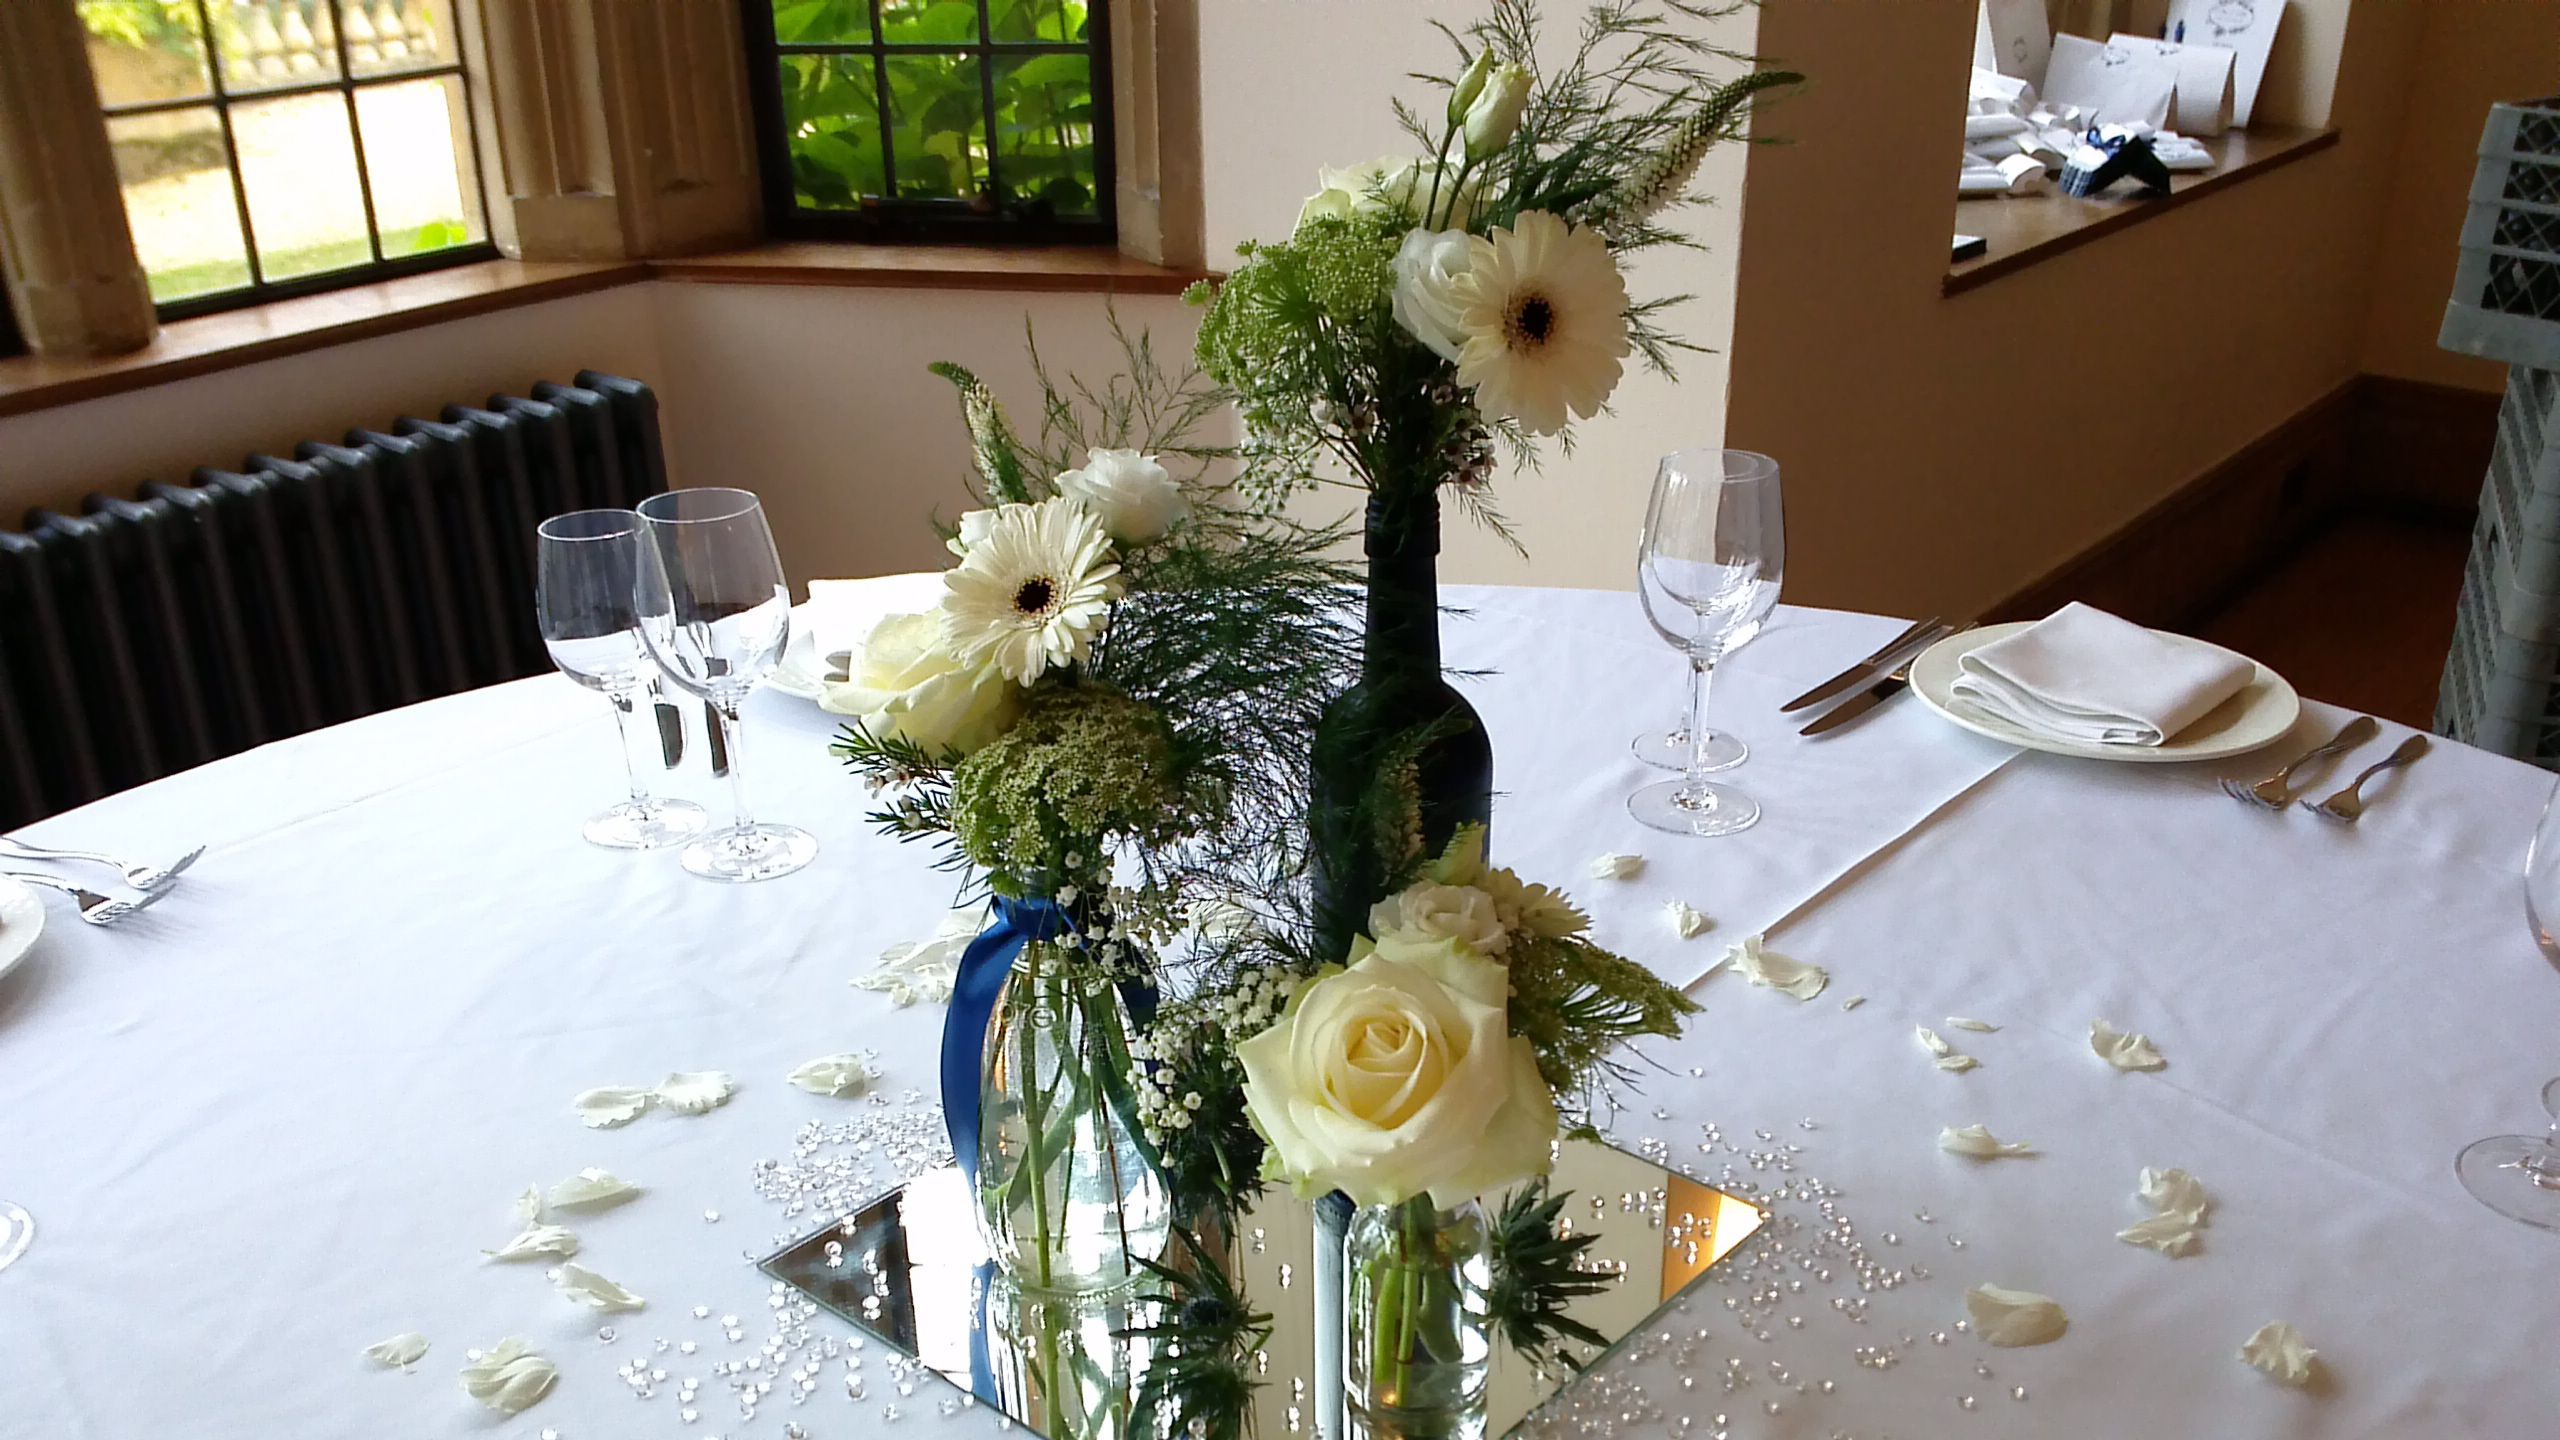 Attractive Stunning Table Centres Of Mixed Vases On Square Mirrors From Roziu0027s Posies